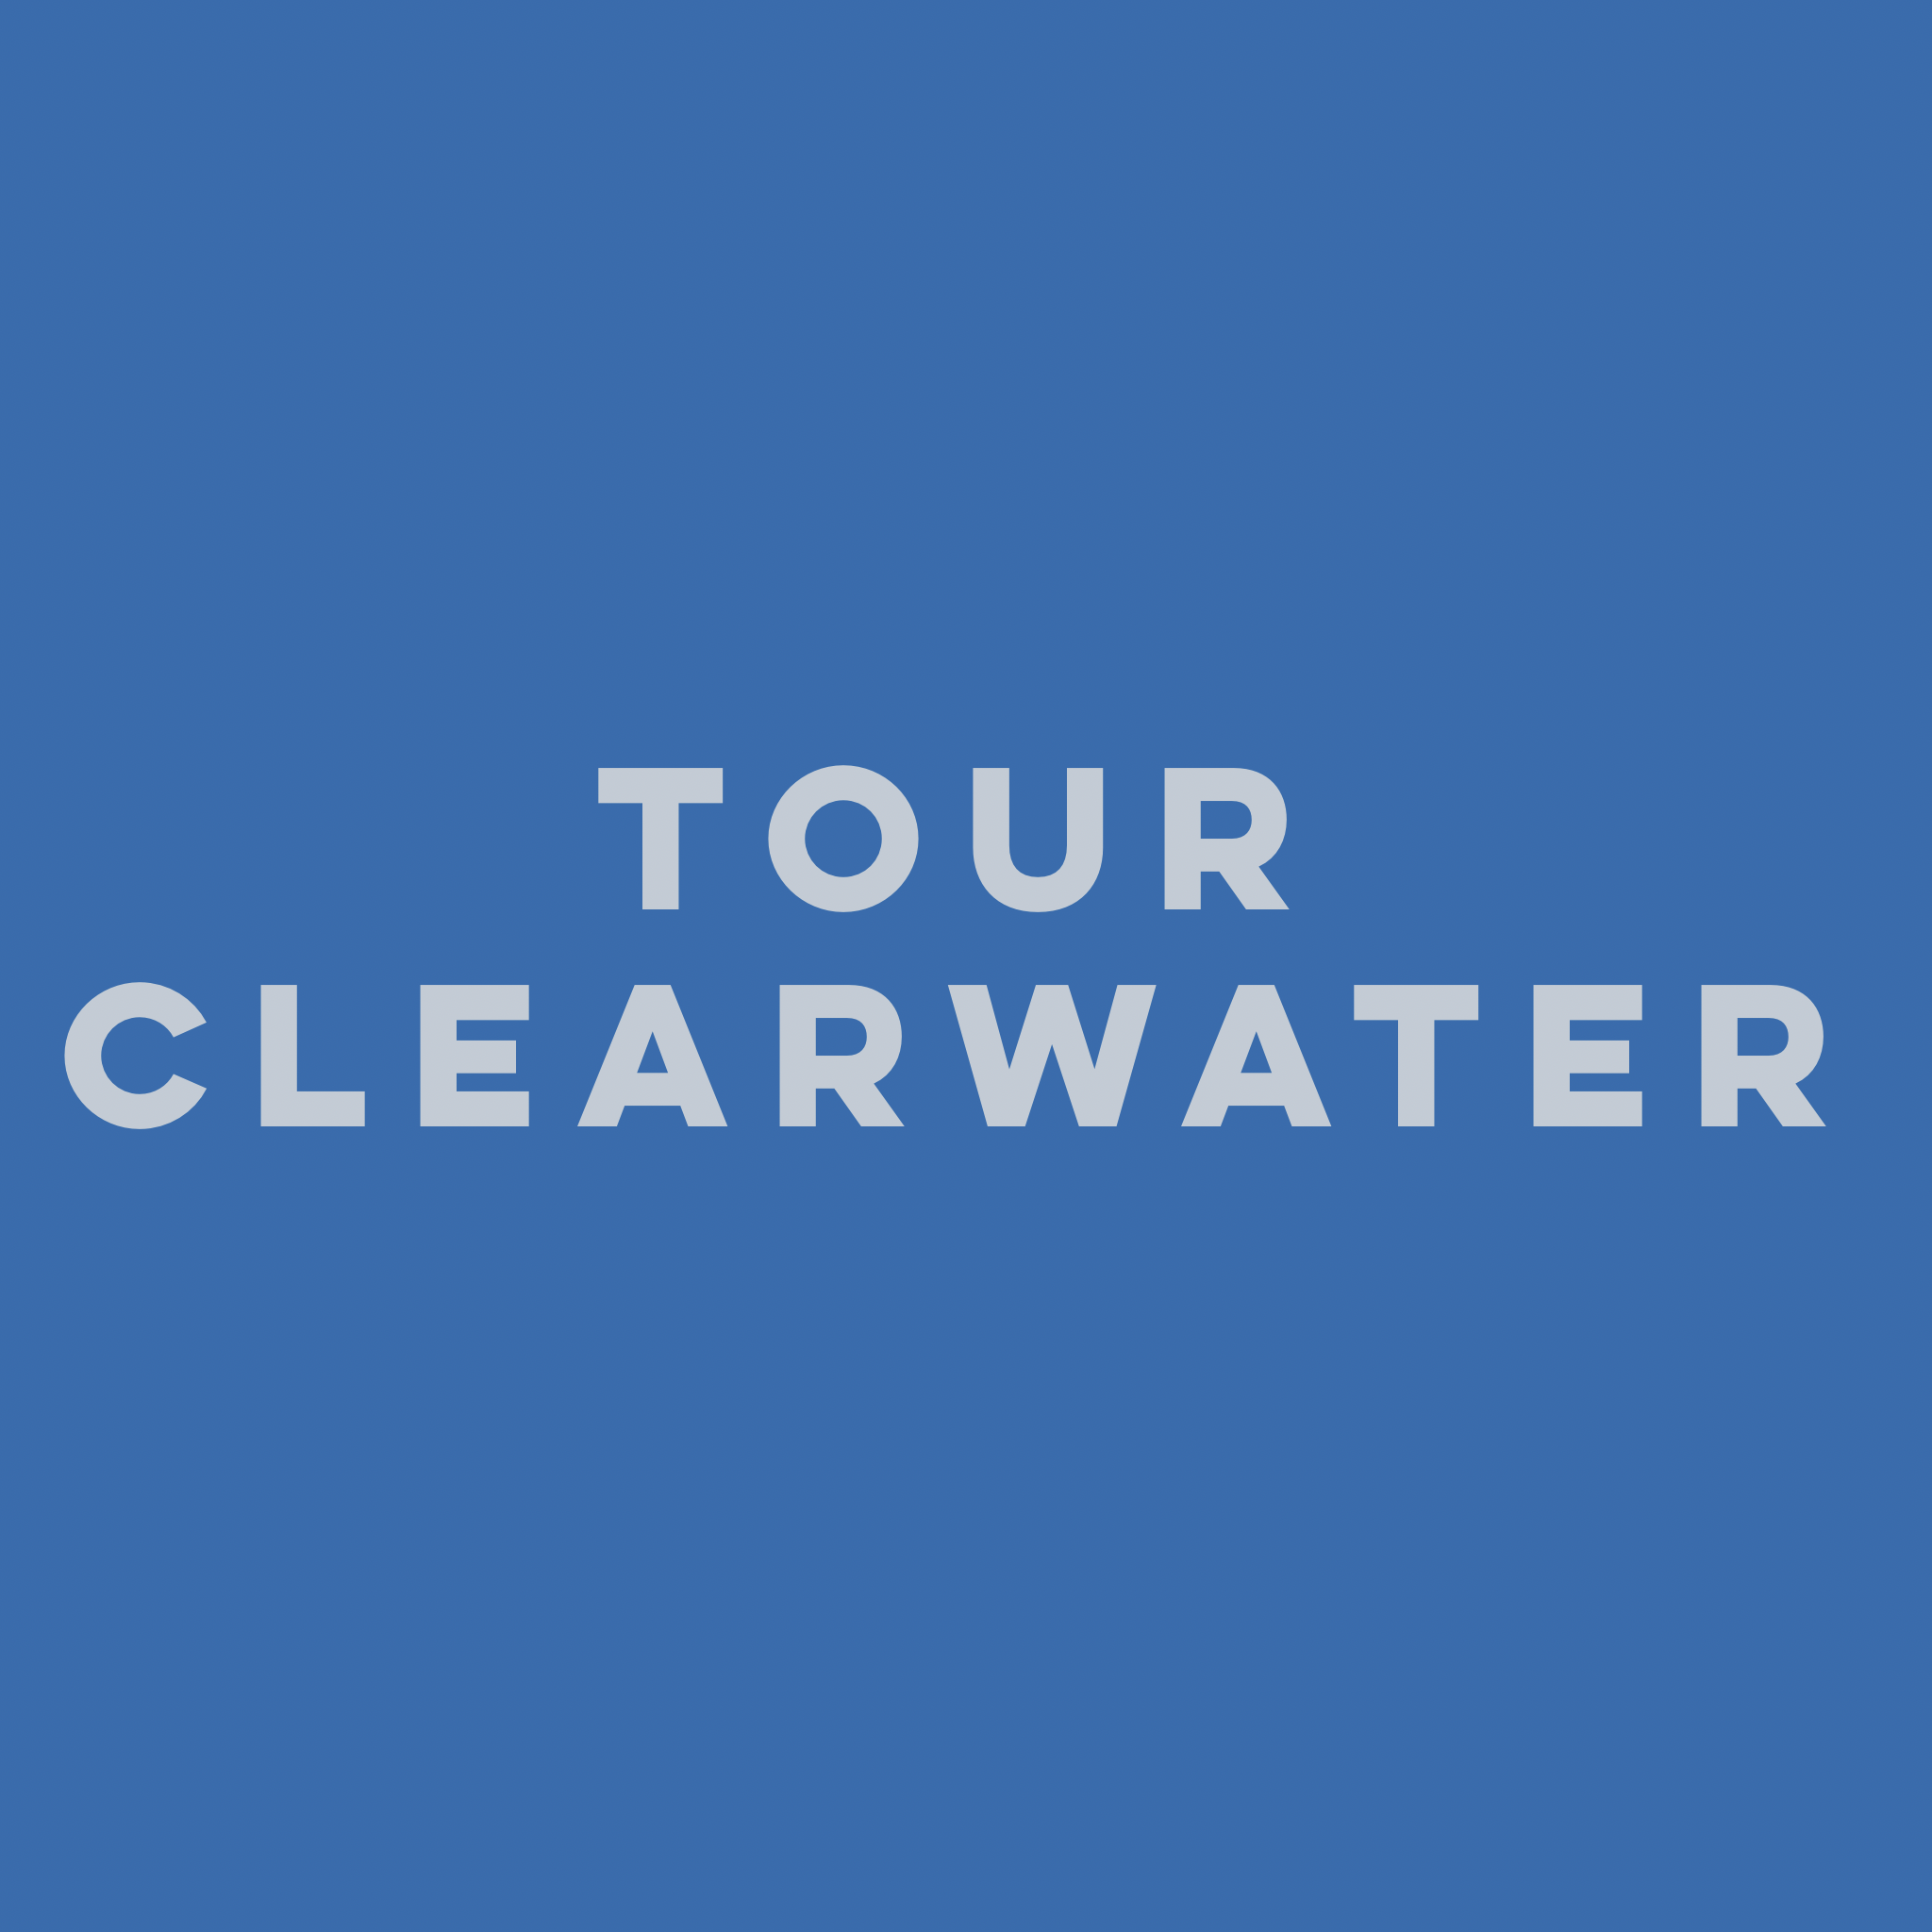 Tour Clearwater